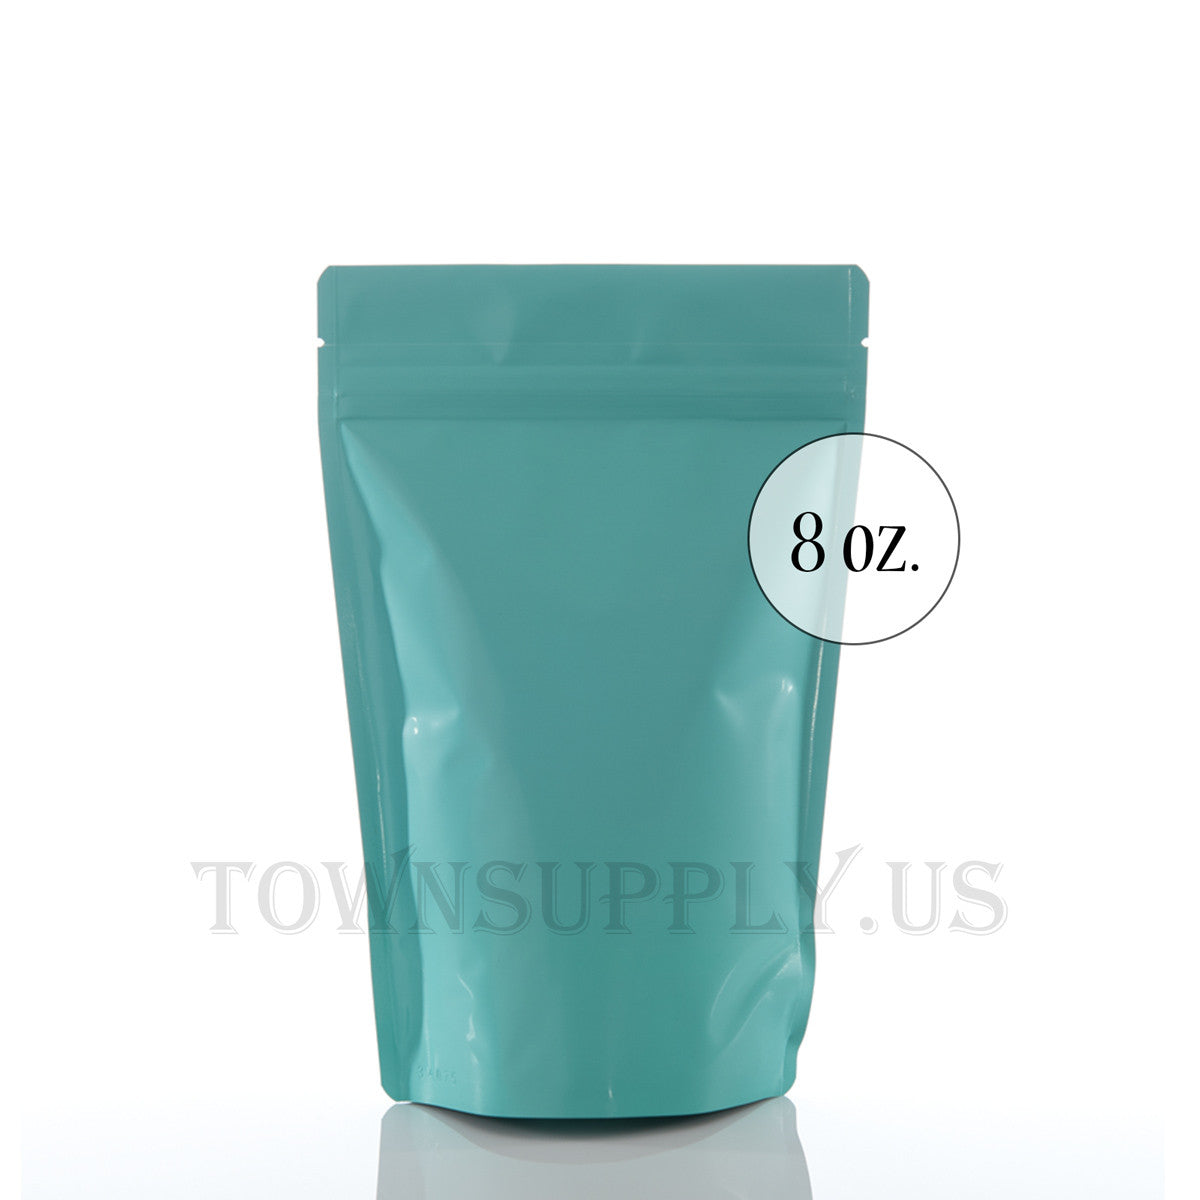 matte turquoise resealable stand up pouch with valves, 8 oz. bags, 10,000 piece lot - Town Supply